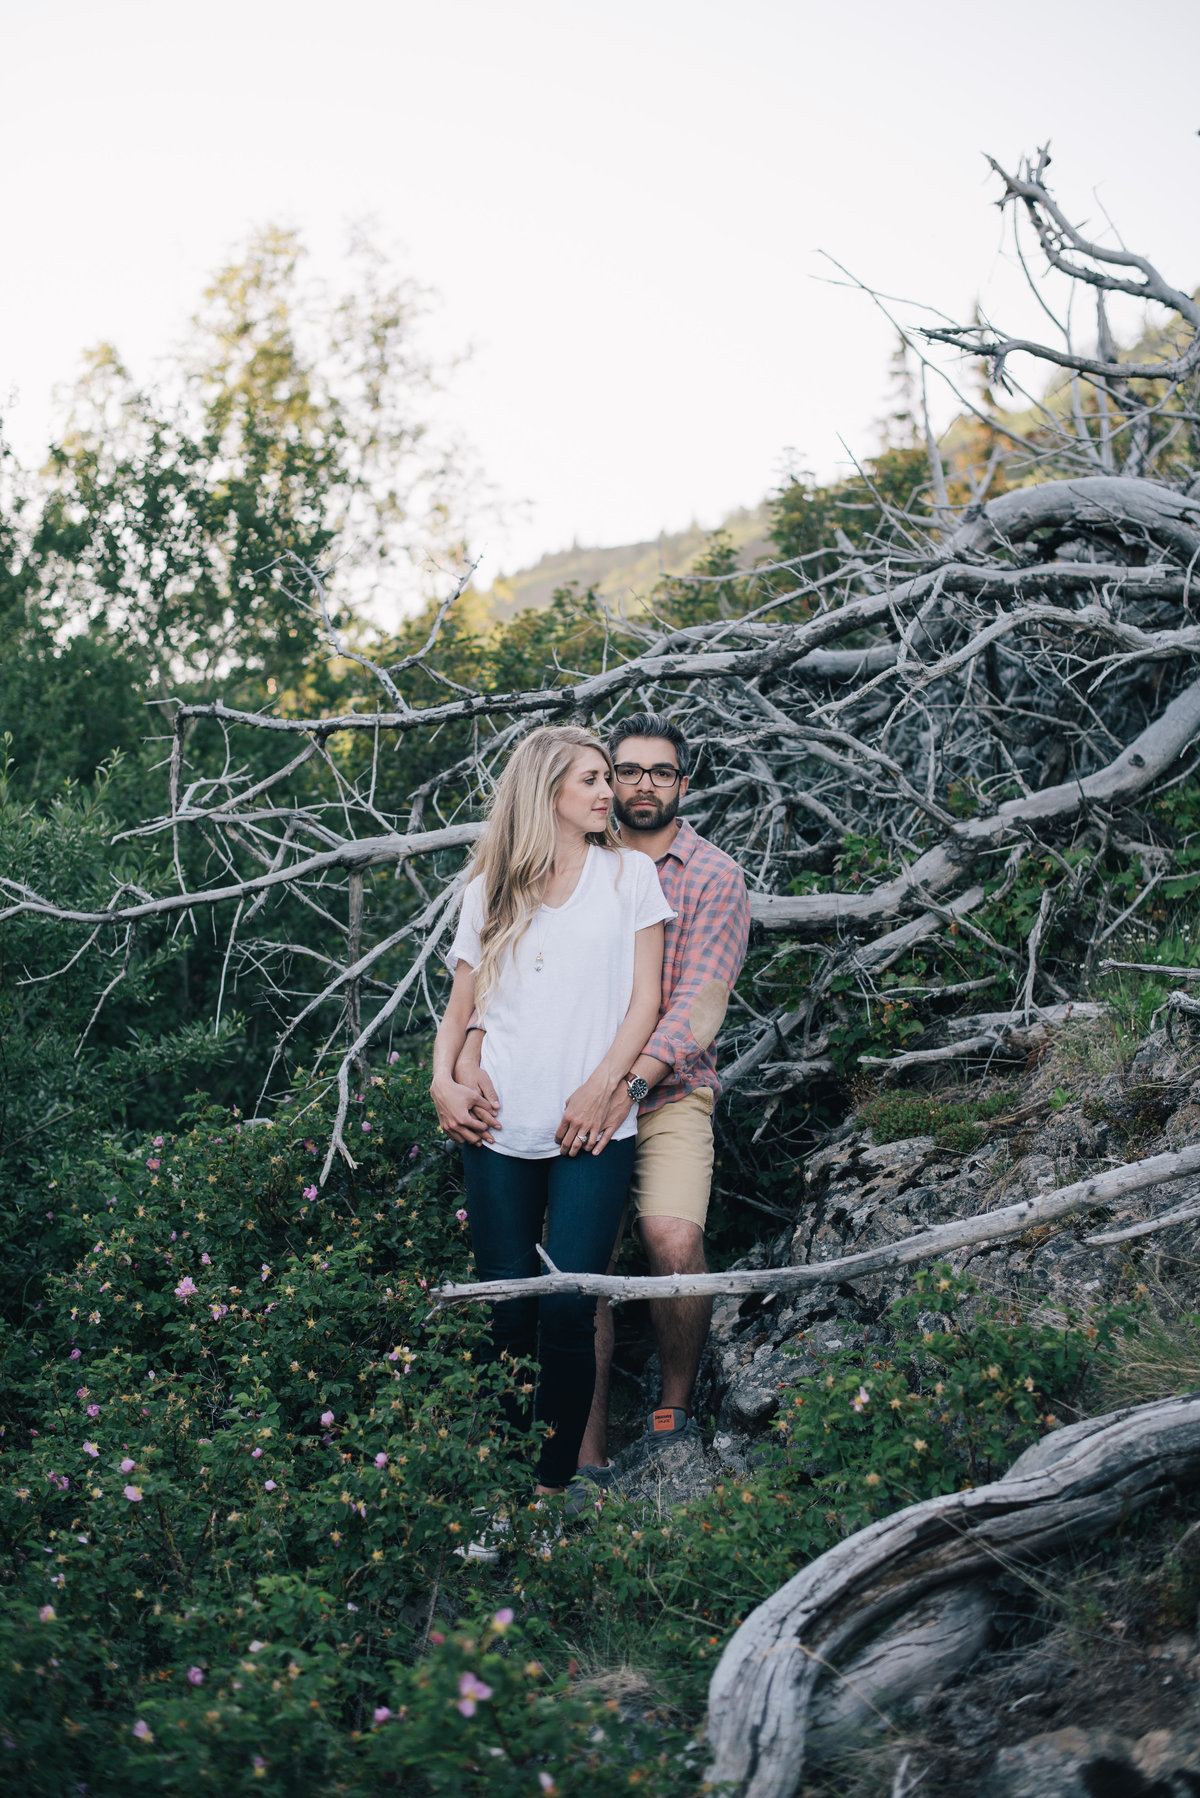 009_Erica Rose Photography_Anchorage Engagement Photographer_Featured